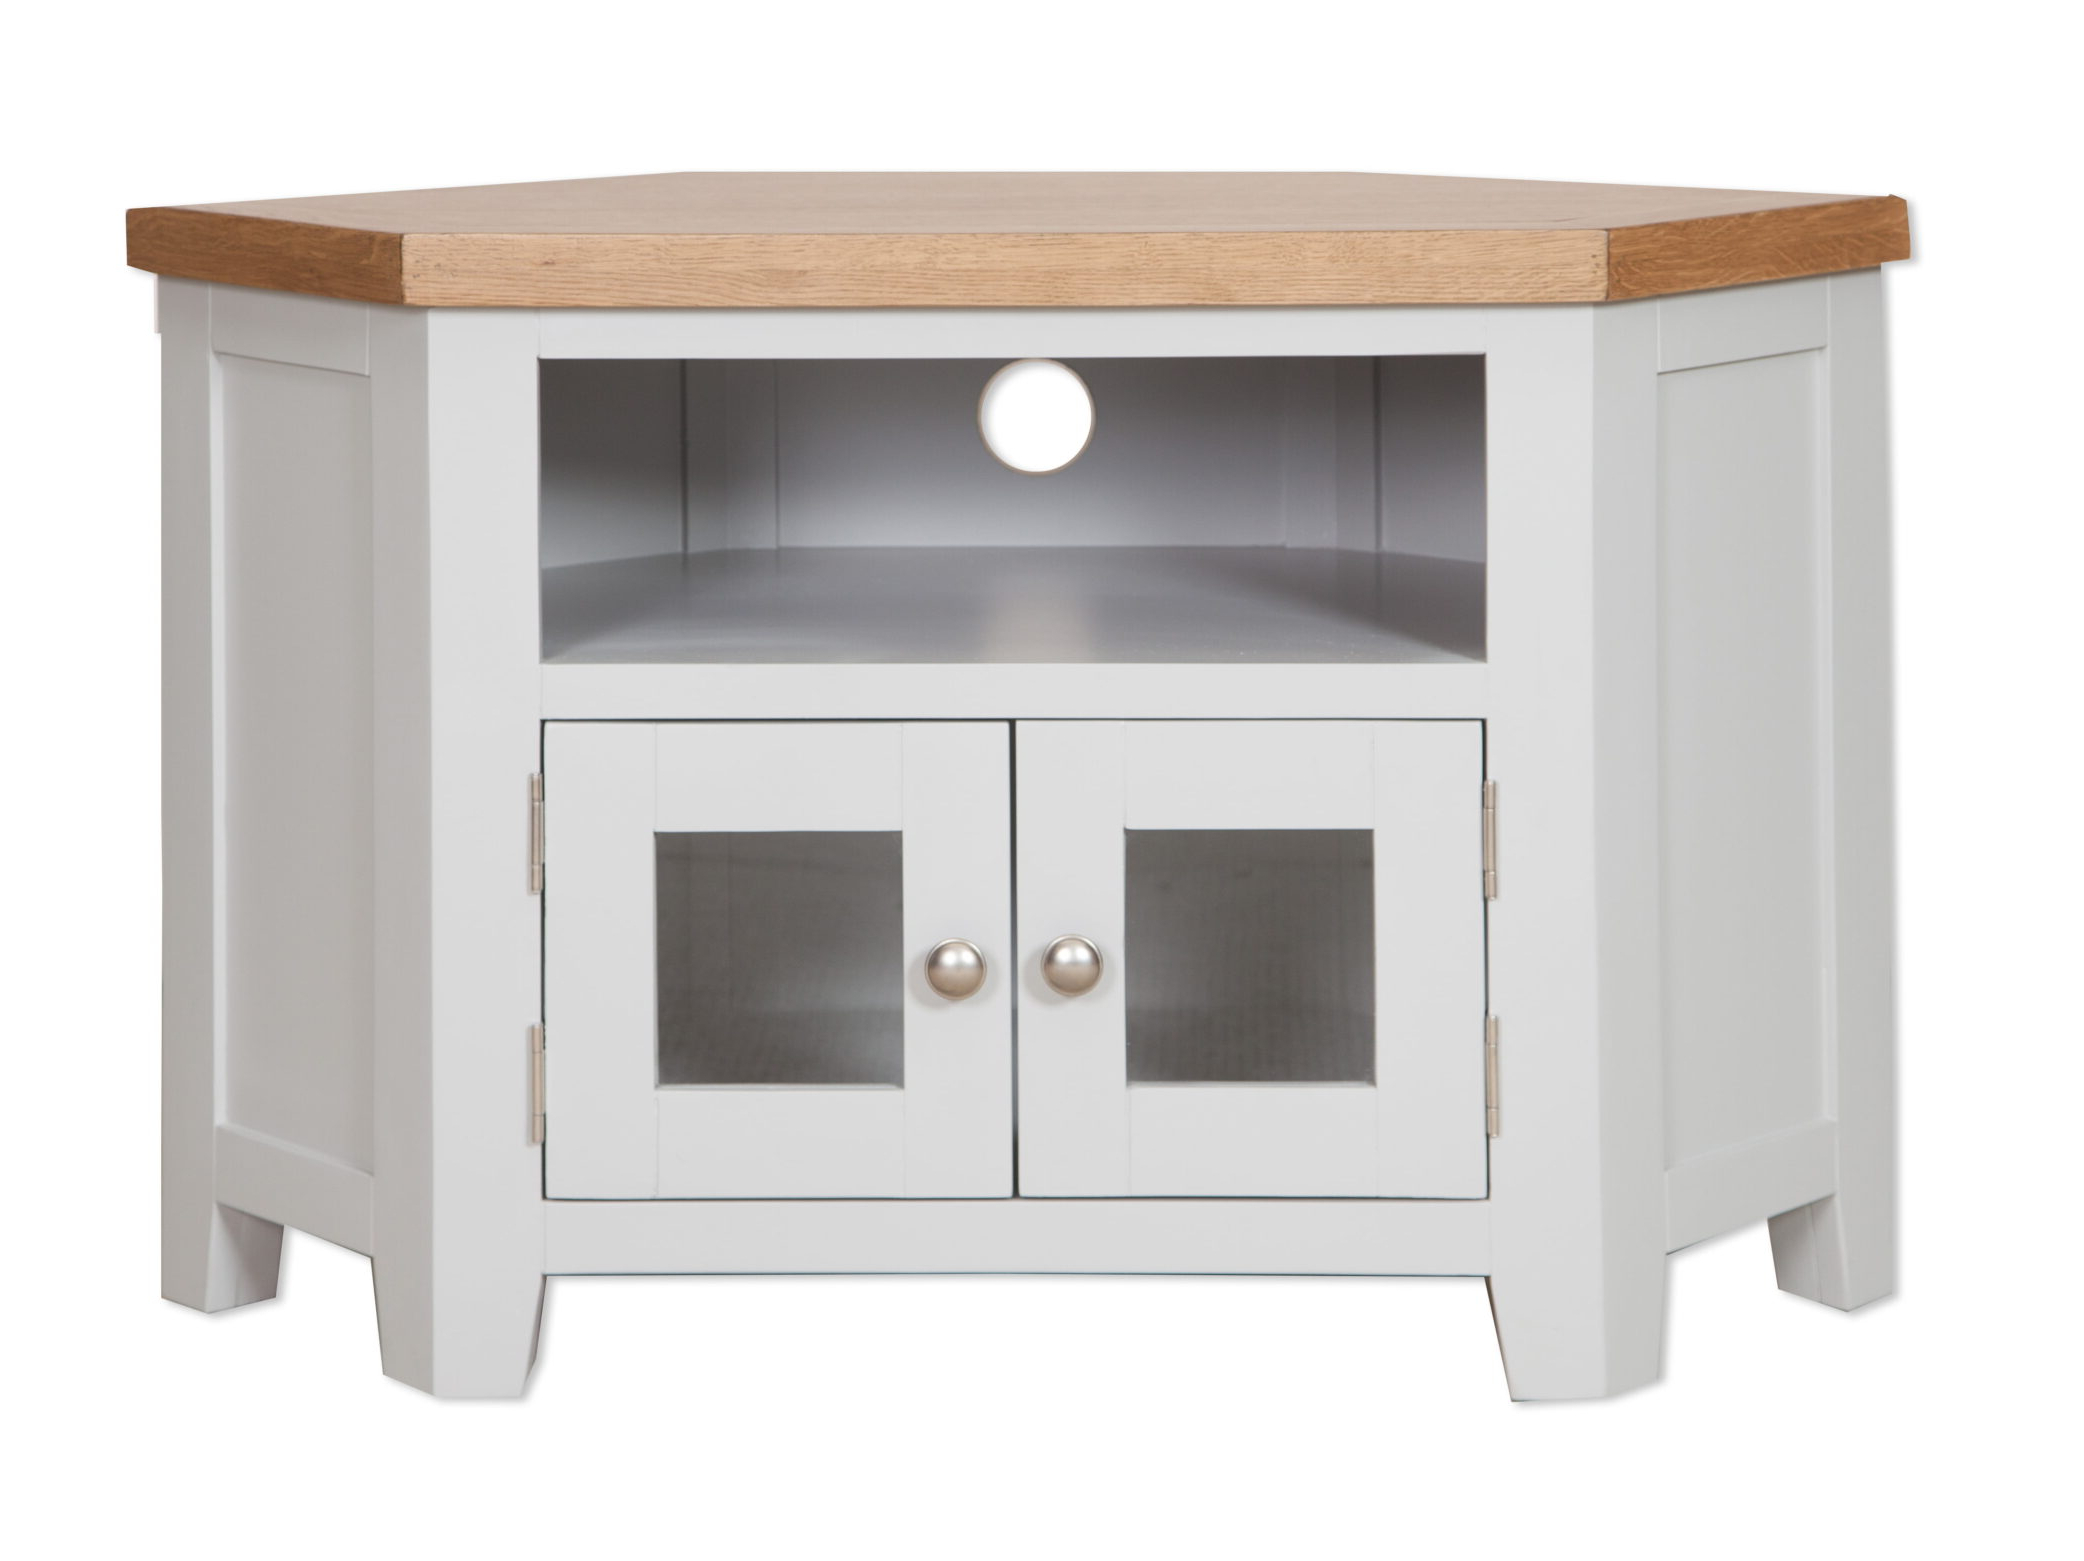 French Ivory Cream Painted Sideboard 3 Door 3 Drawer With Regard To Most Up To Date Compton Ivory Corner Tv Stands With Baskets (View 10 of 25)